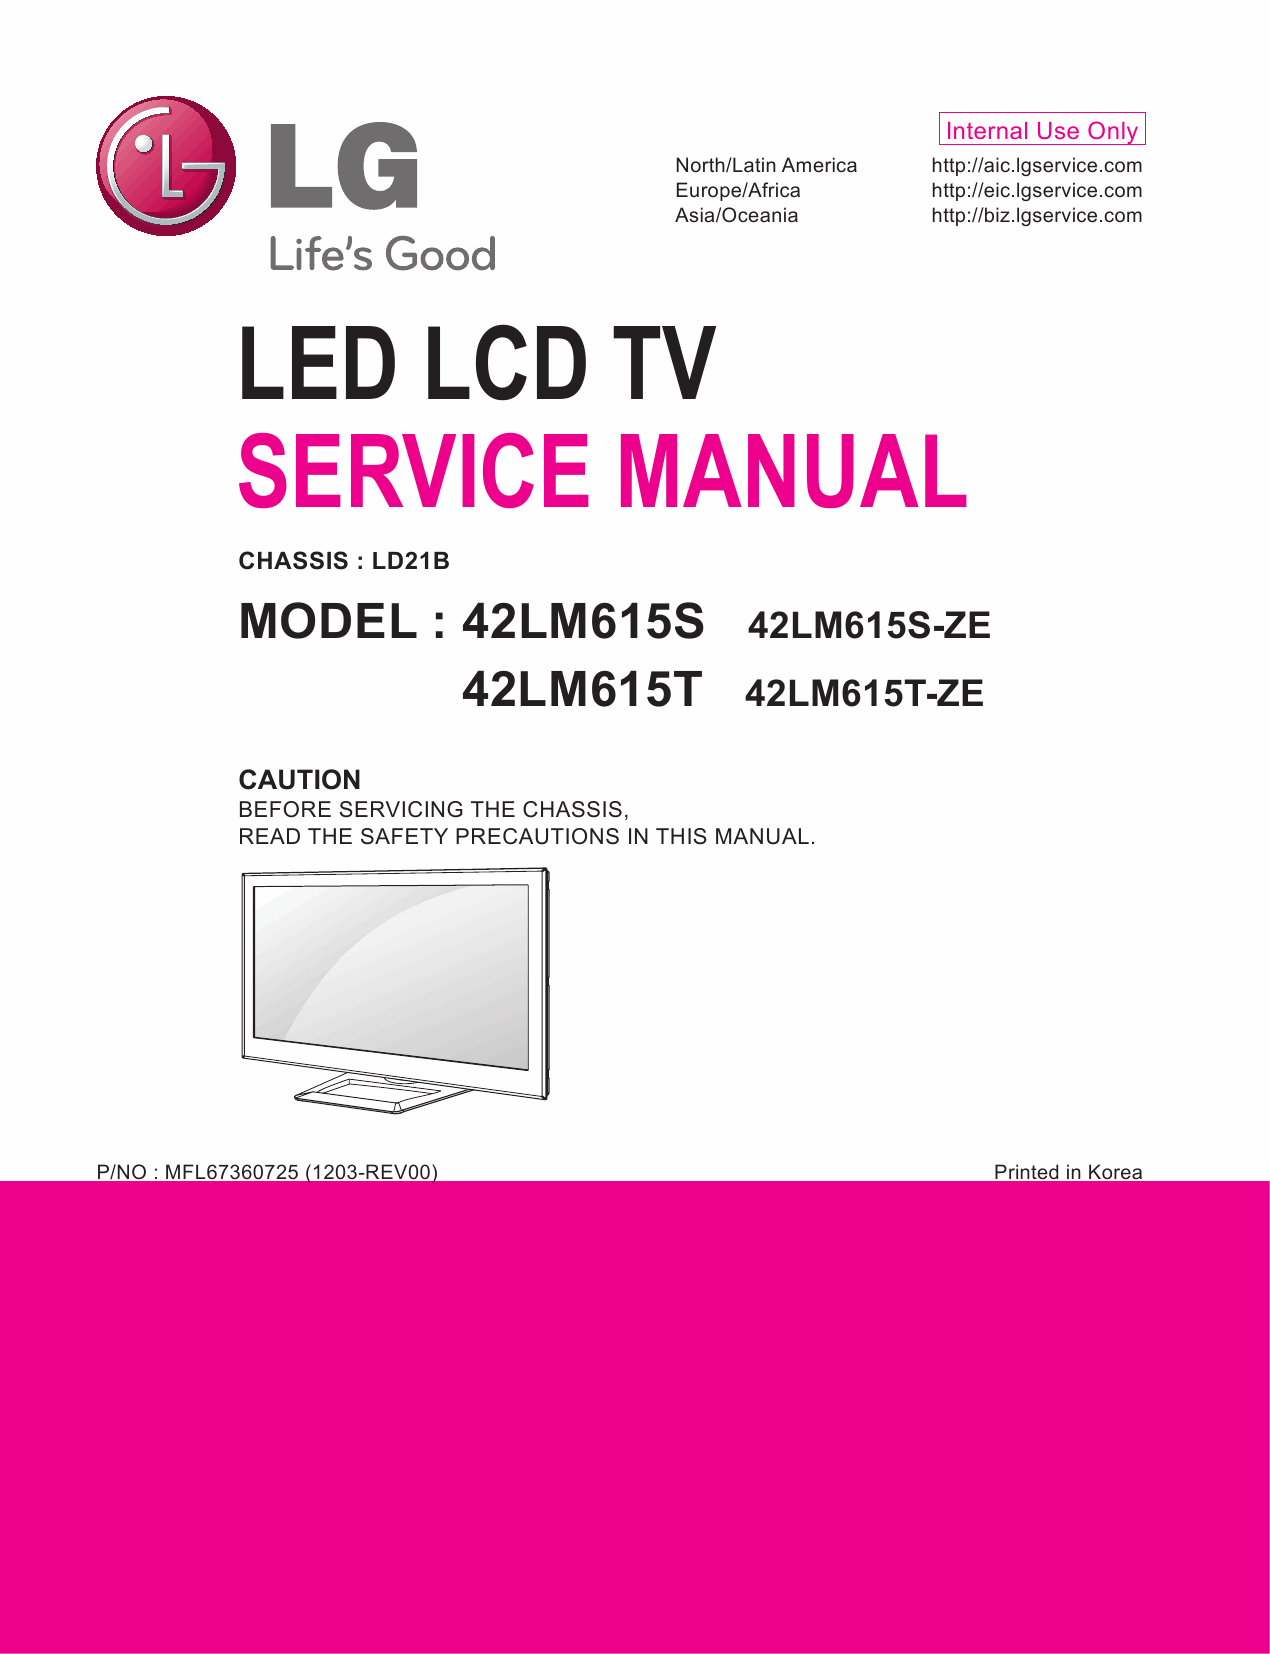 LG_LCD_TV_42LM615S_615T_Service_Manual_2012_Qmanual.com-1